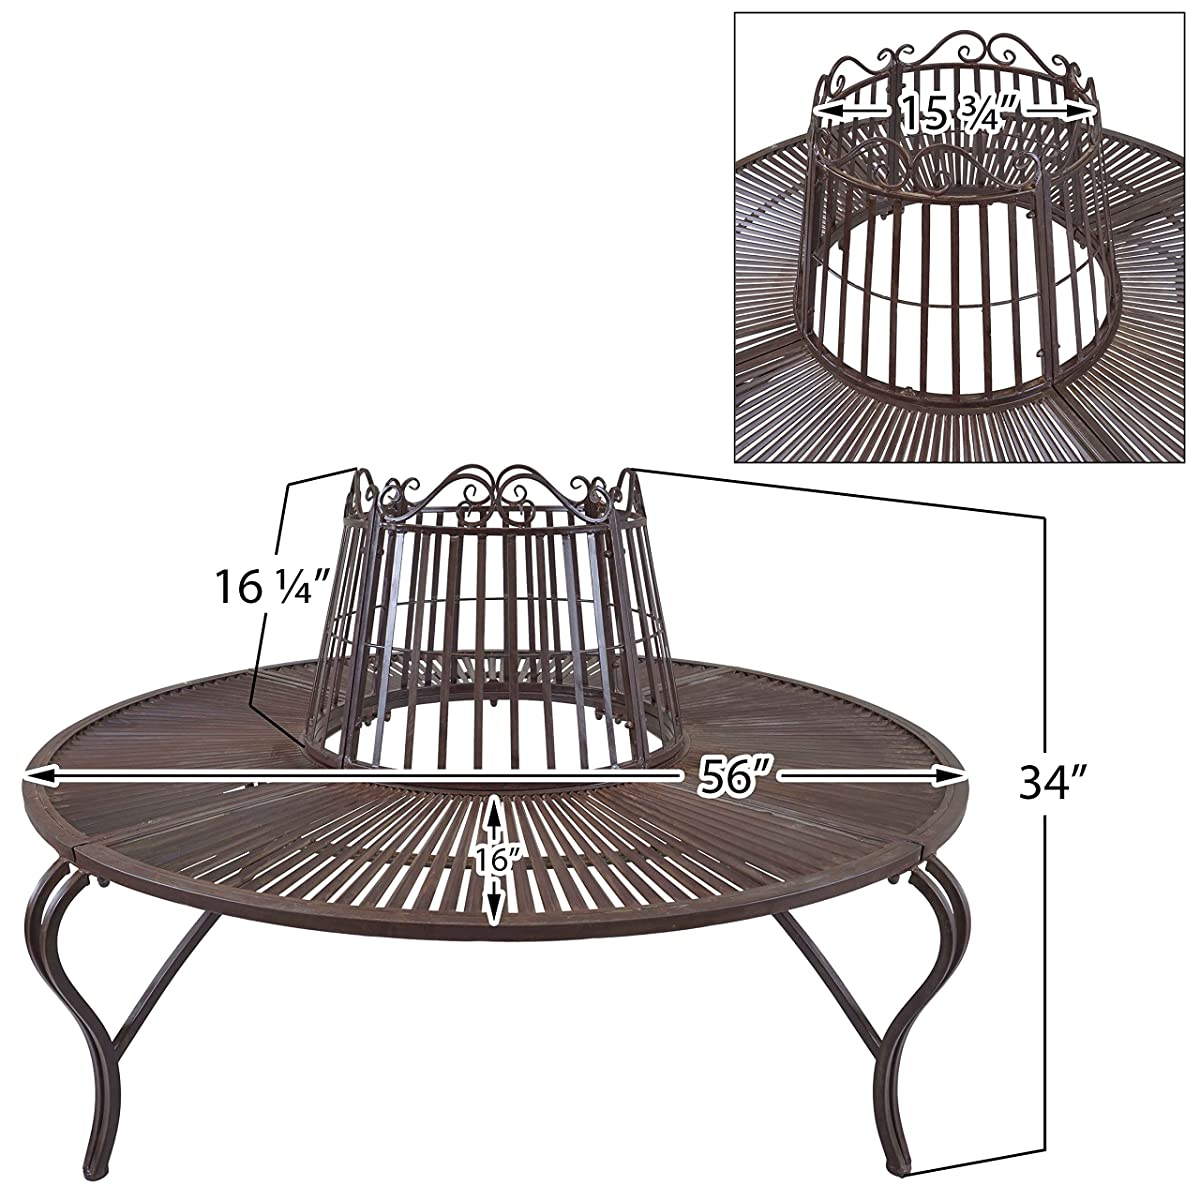 Titan Antique Tree Surround Bench Outdoor Steel Garden Park Backyard Rustic